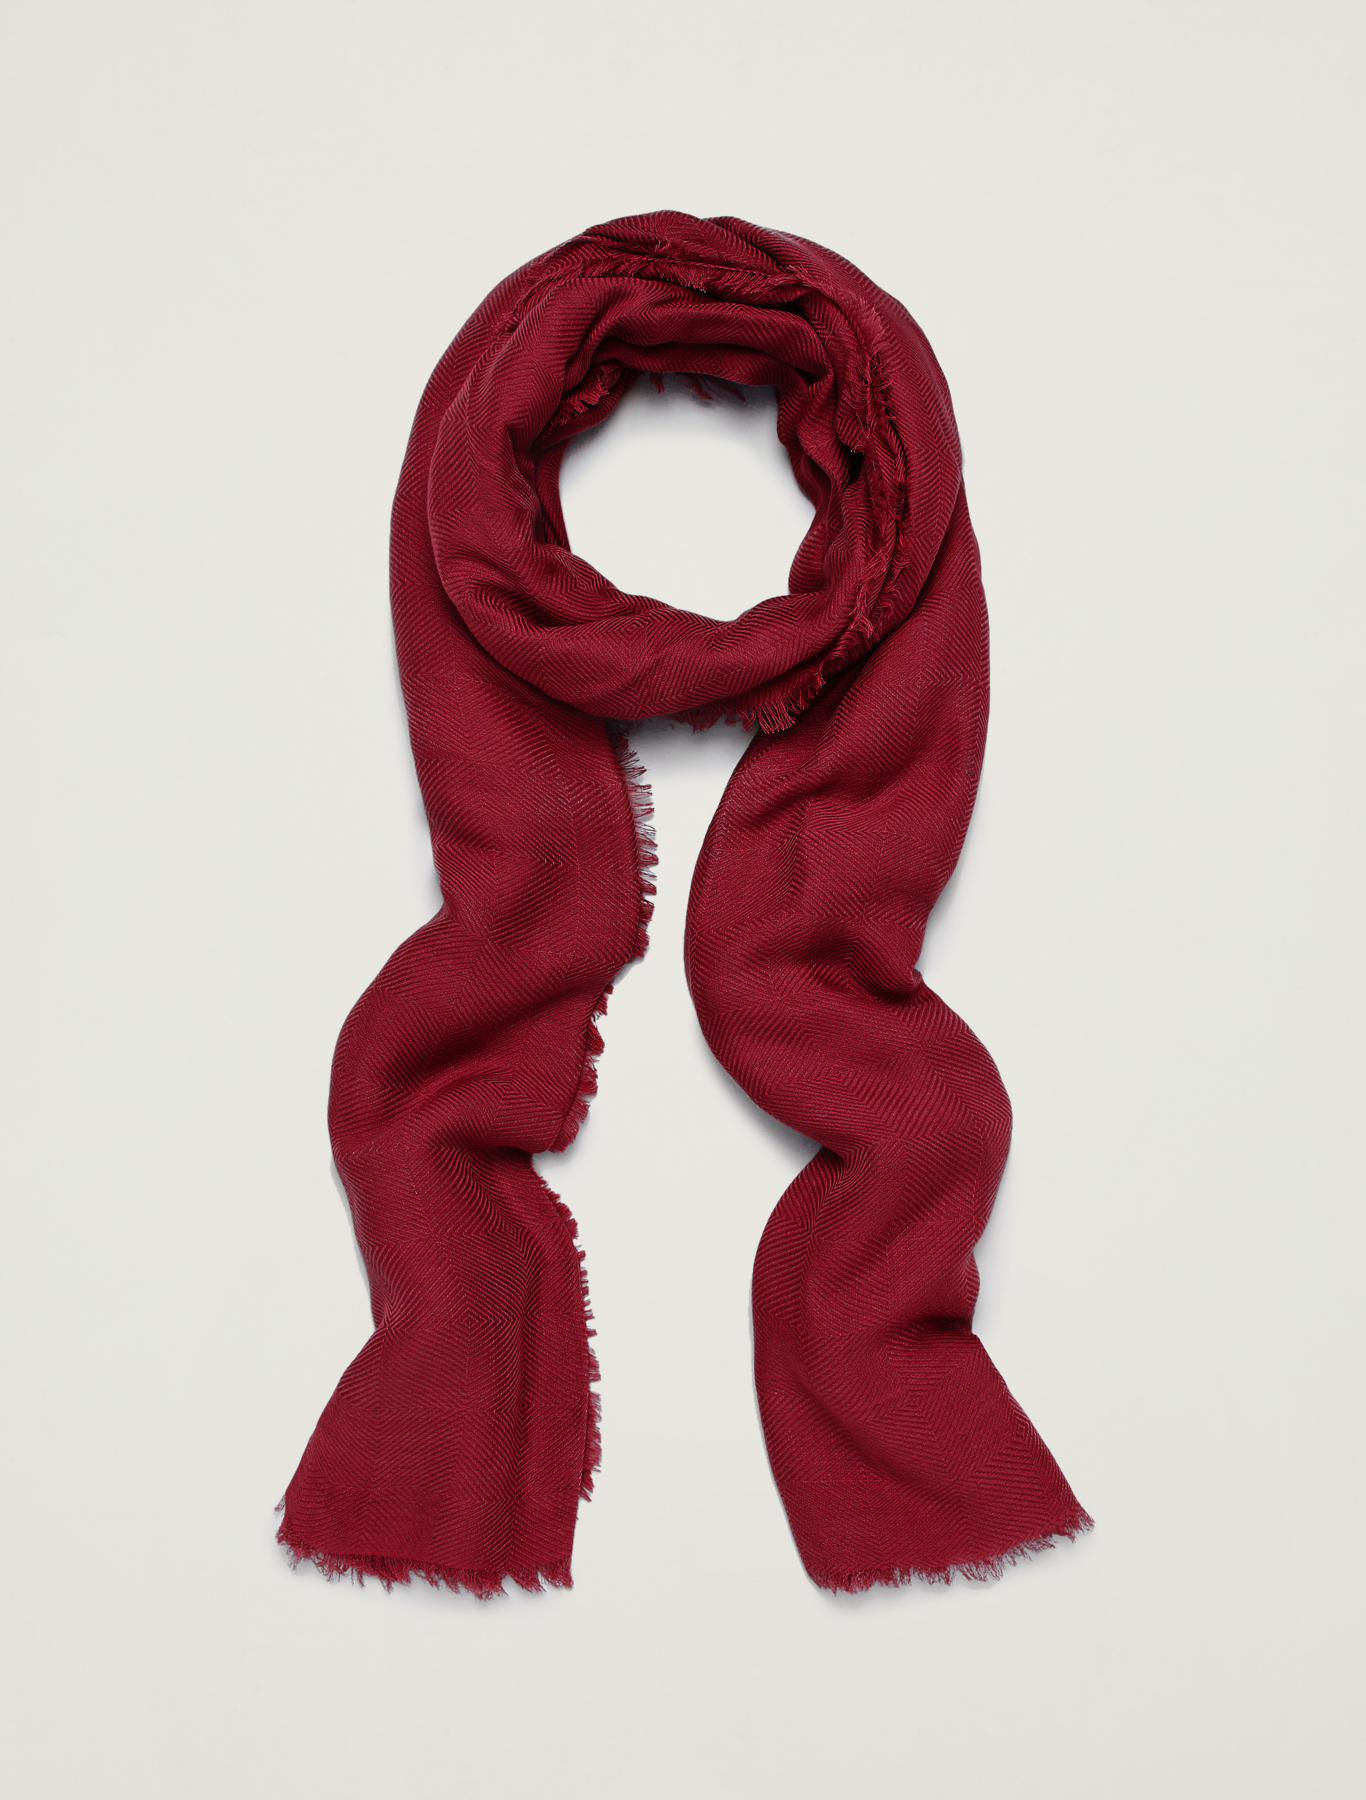 Jacquard scarf - red - pennyblack